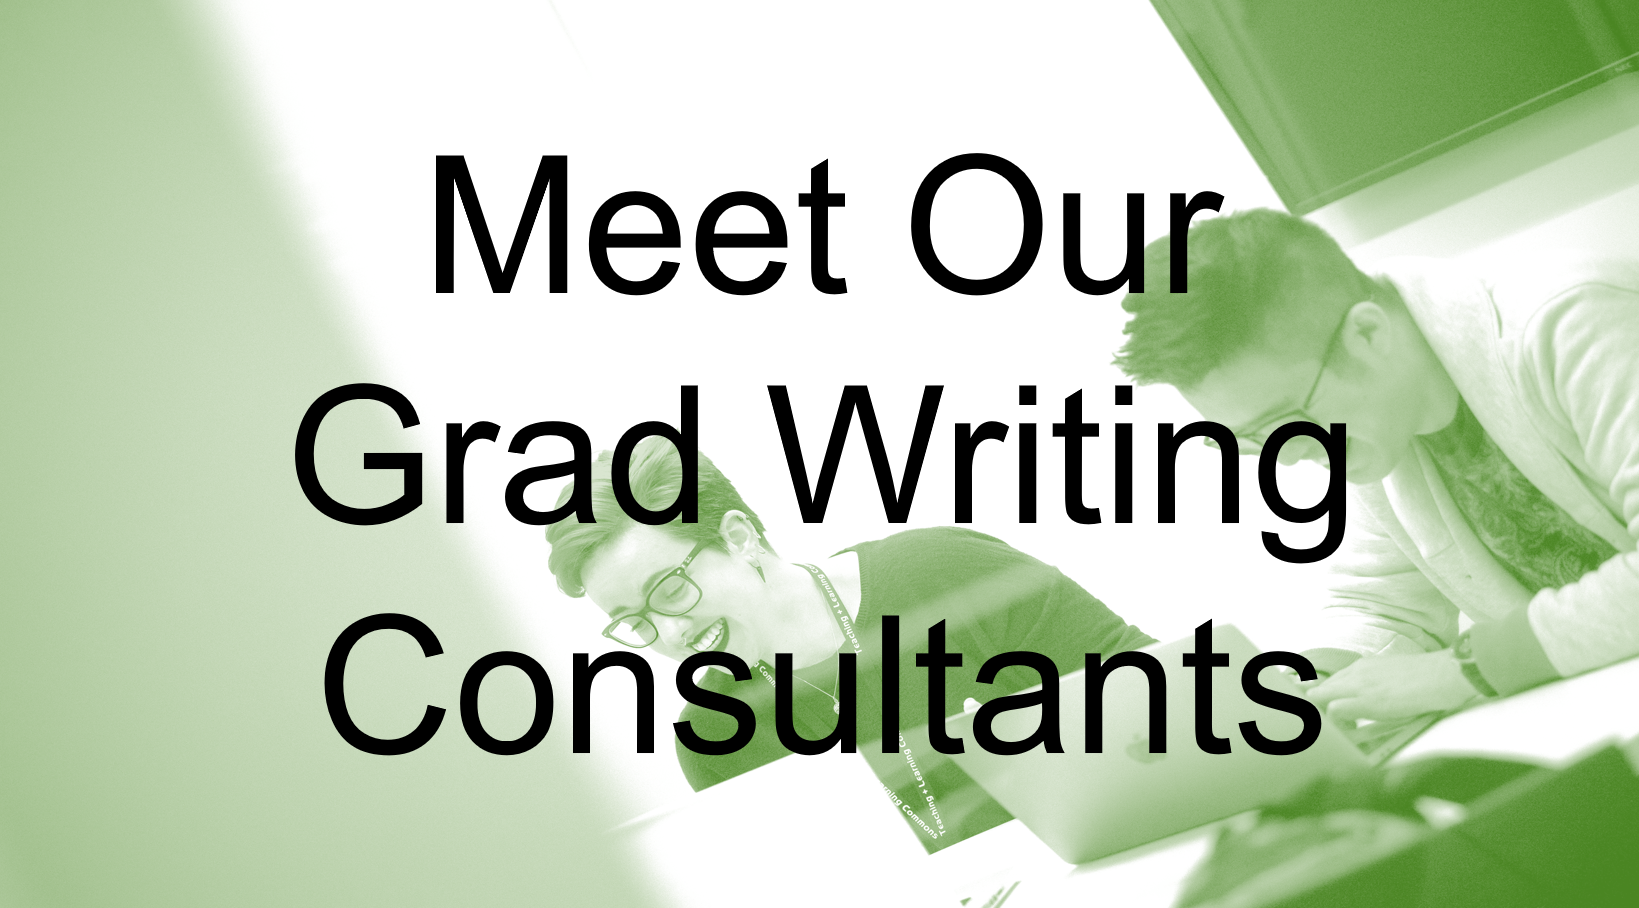 Meet Our Grad Writing Consultants textbox on green background